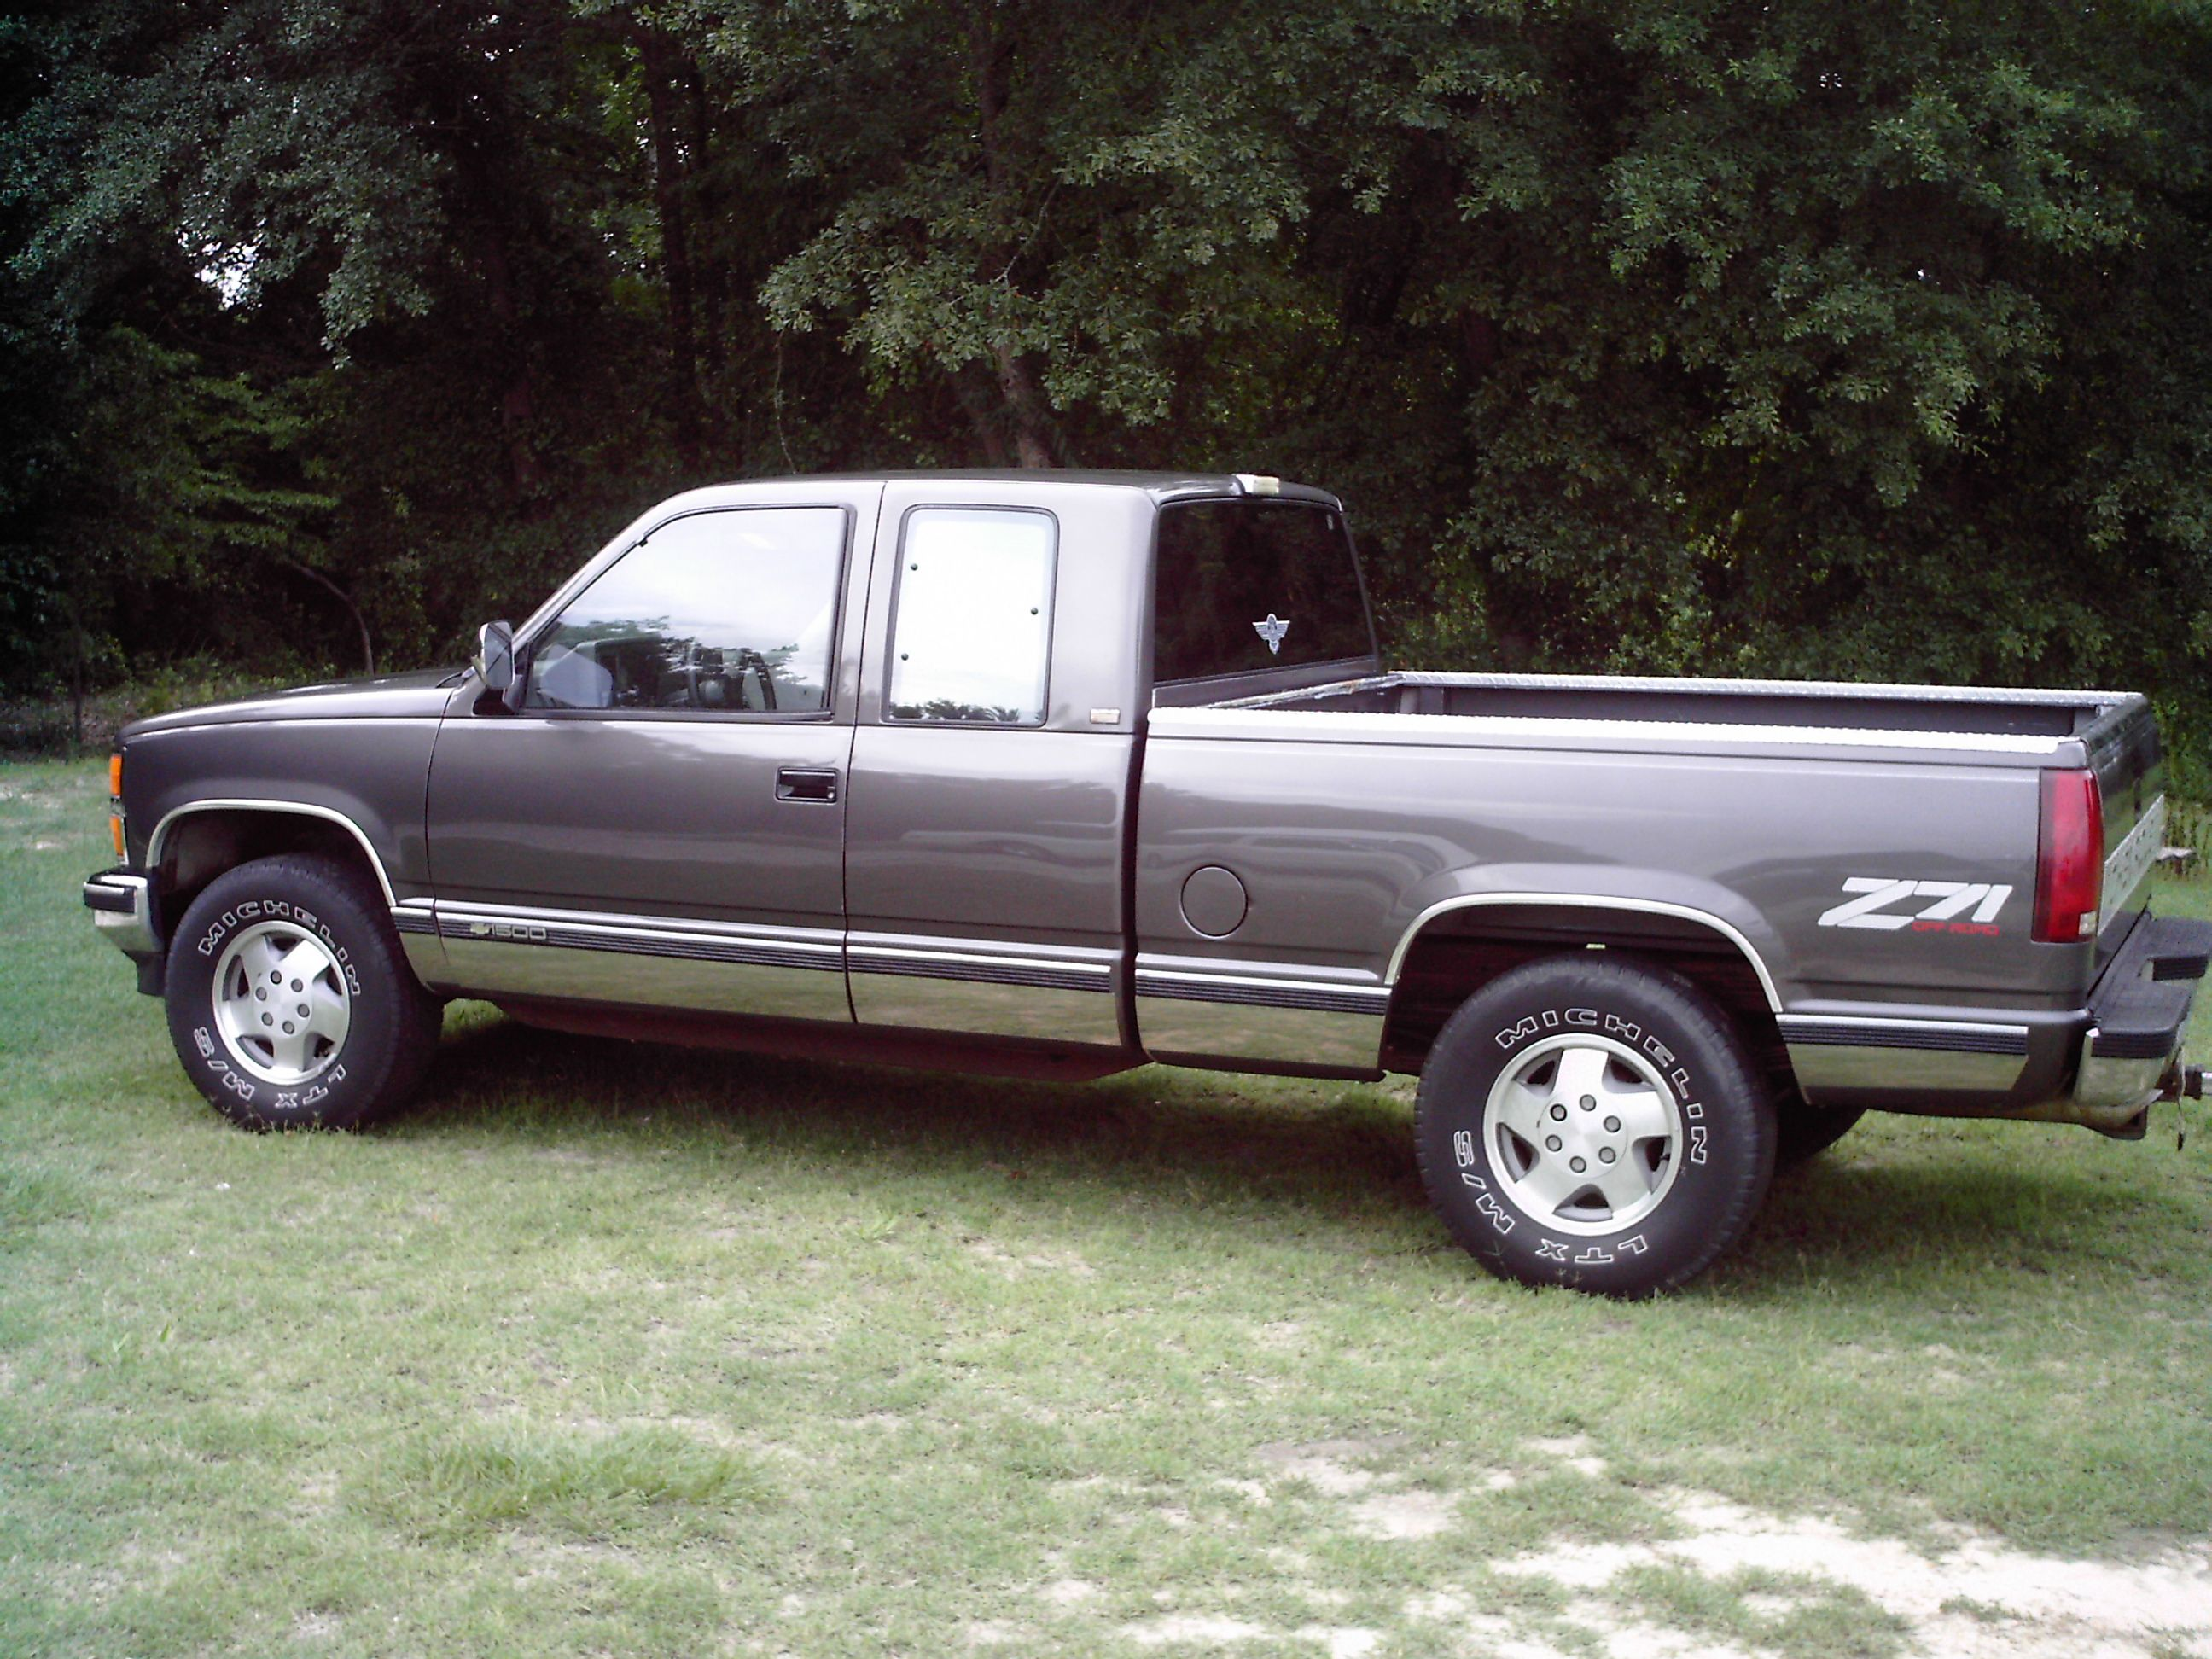 medium resolution of grey 1992 z71 chevy this was my daddy s ol truck i wish we still had it i want a truck just like this one but jacked up n with some big